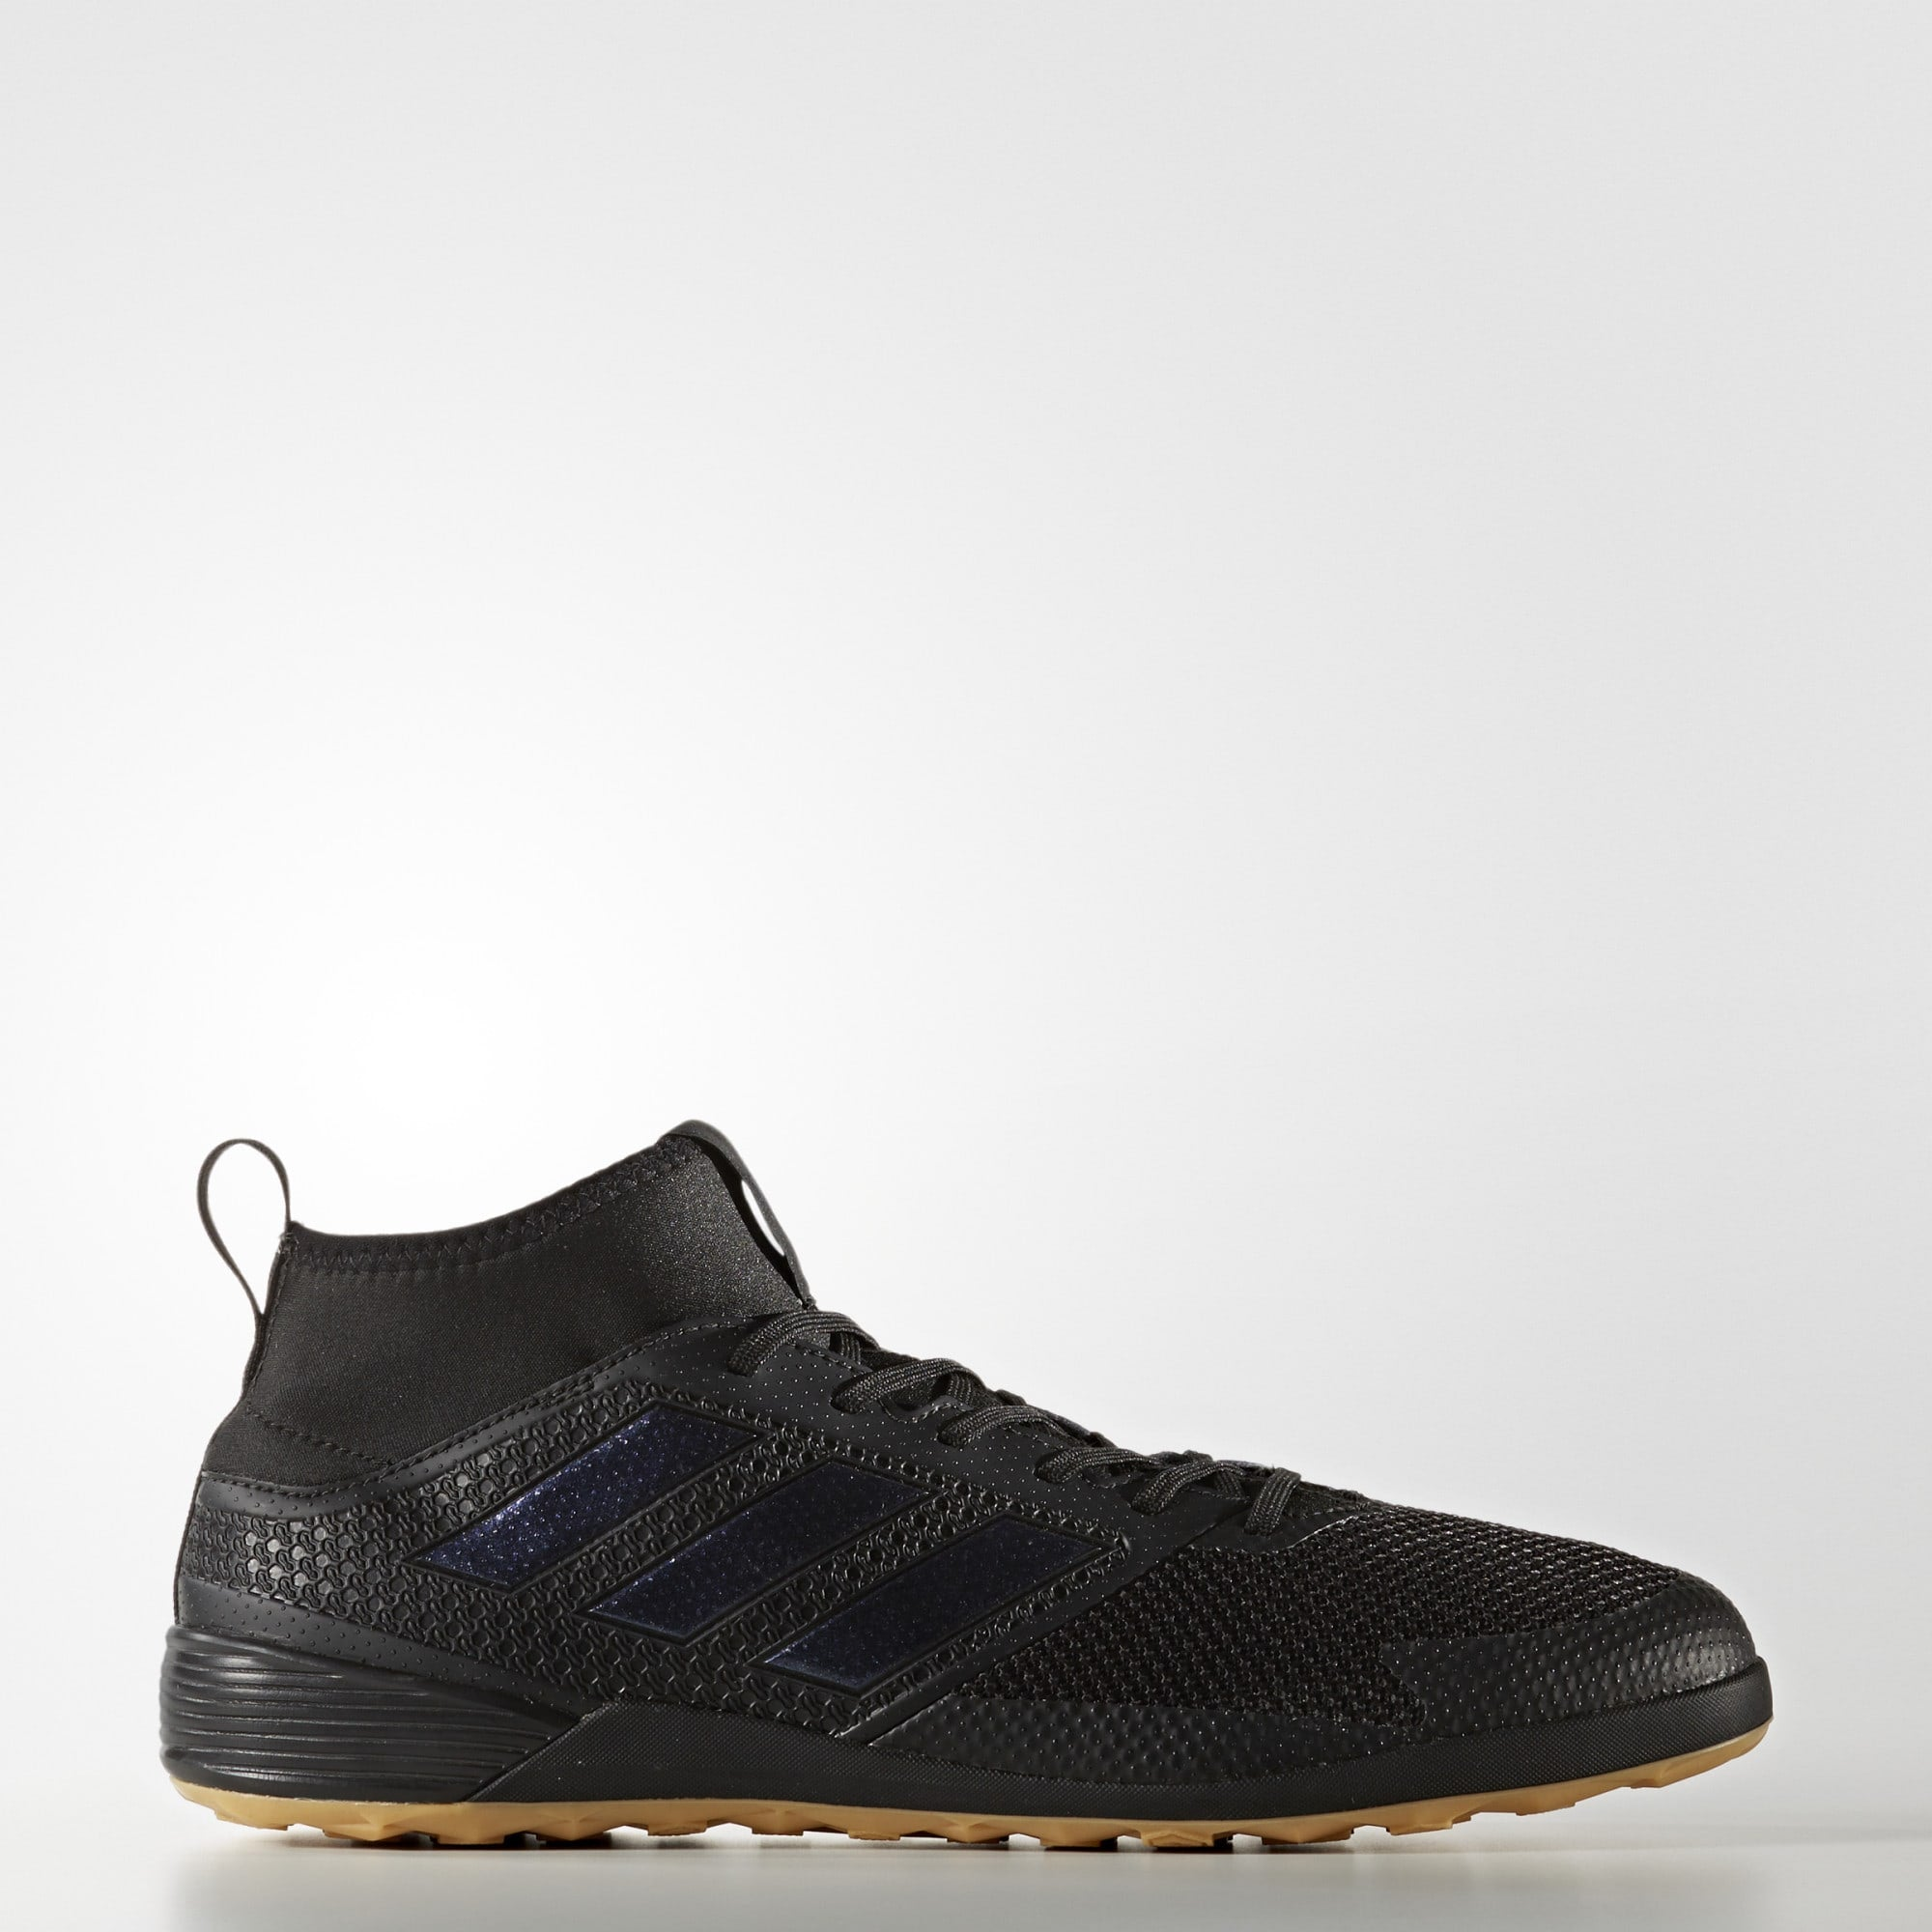 los angeles 20a7d a09e7 Men's adidas ACE Tango 17.3 Indoor Boots